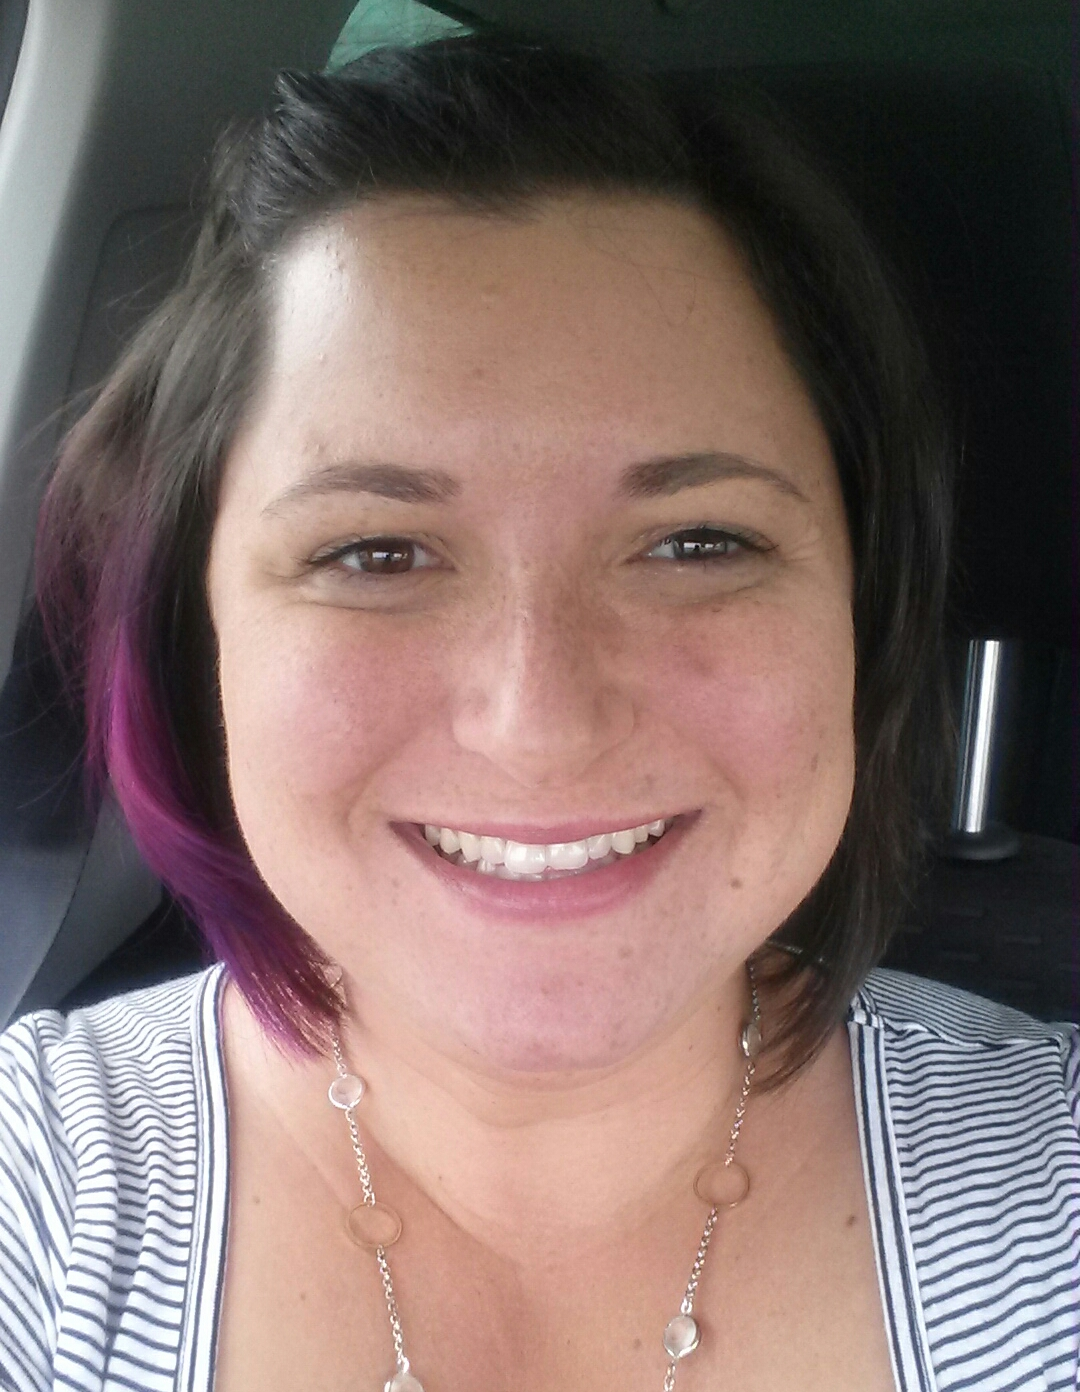 Michelle George Board Member - Michelle George is a mother, volunteer, animal lover and transgender ally from Valparaiso, Indiana. She believes Trees, Inc. is important to her because enriching lives through transgender education is key to stemming the transgender murder and suicide epidemic.